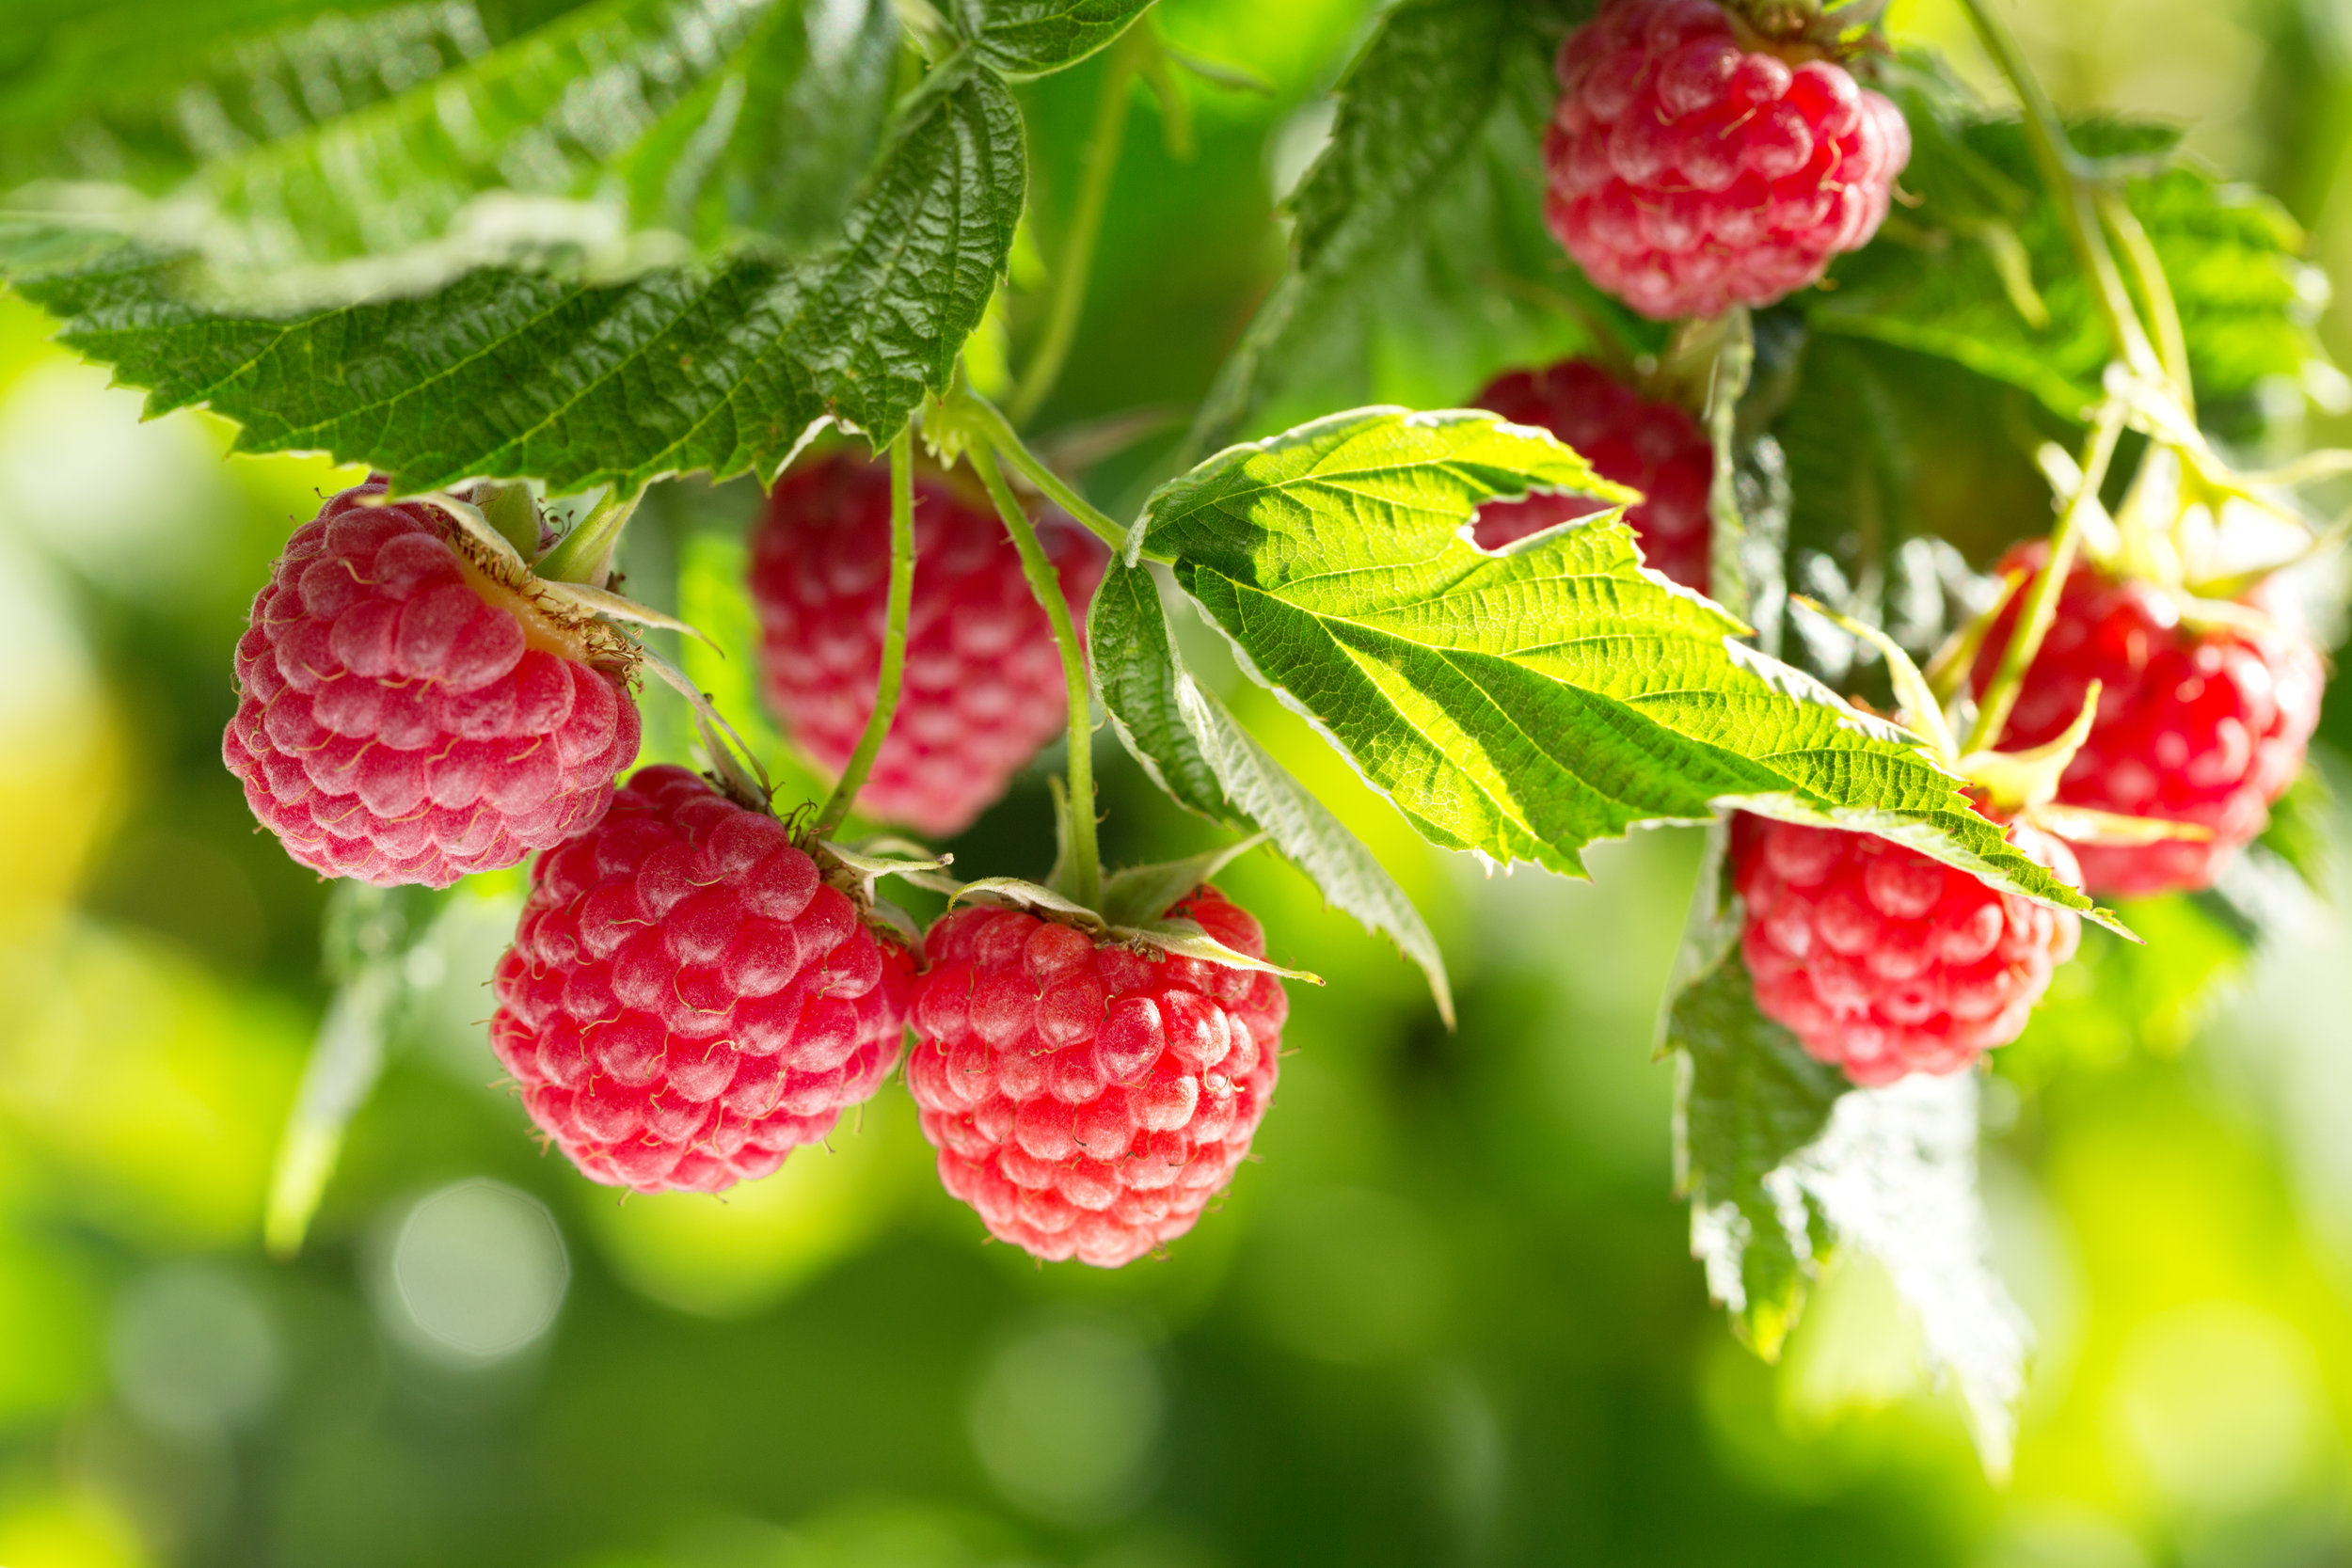 Heritage raspberries